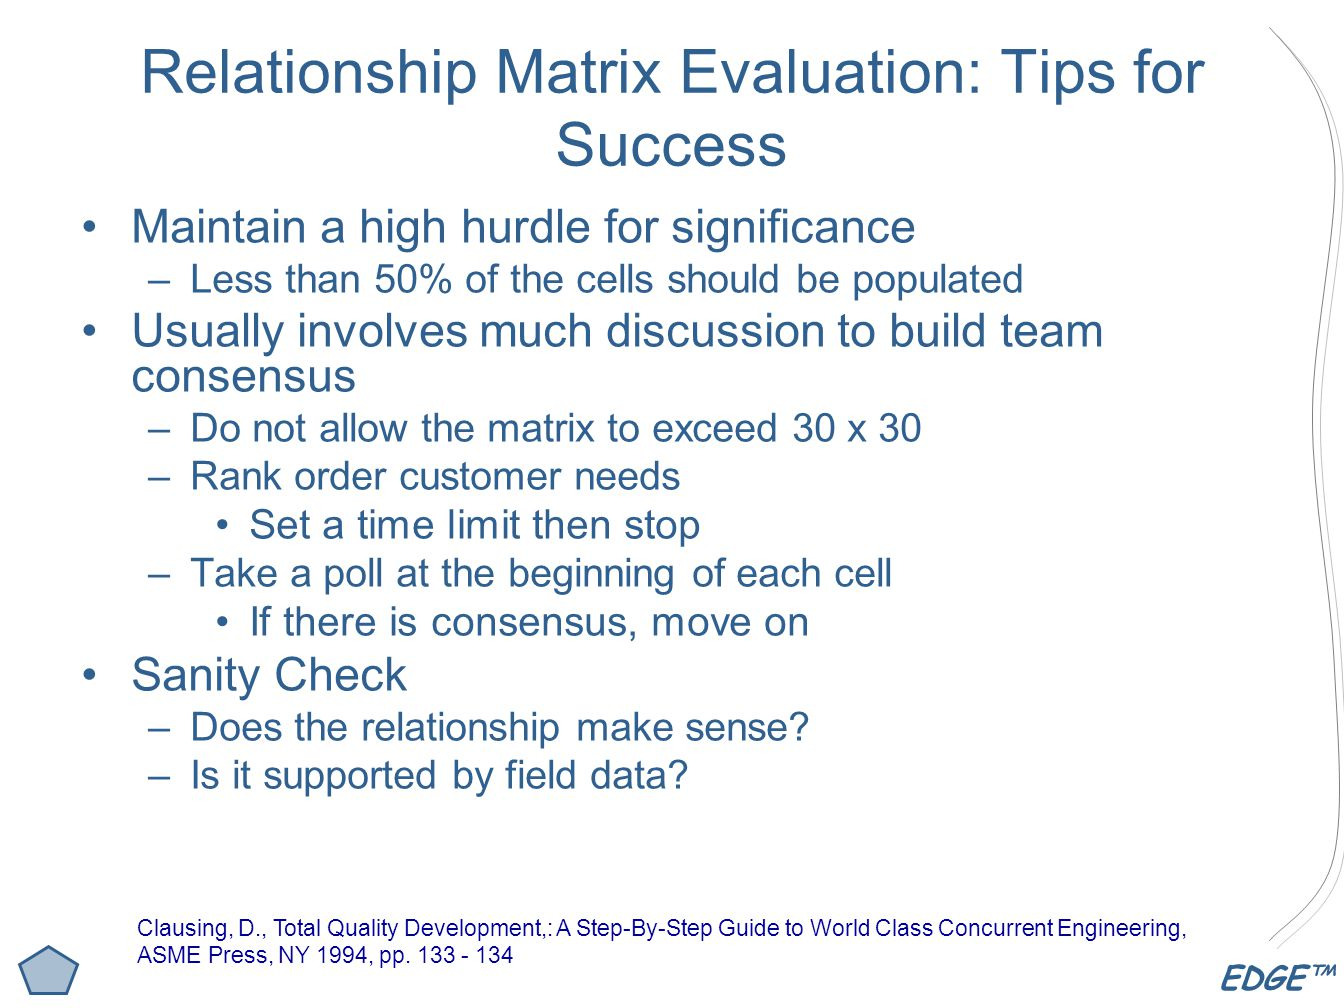 Relationship Matrix Evaluation: Tips for Success